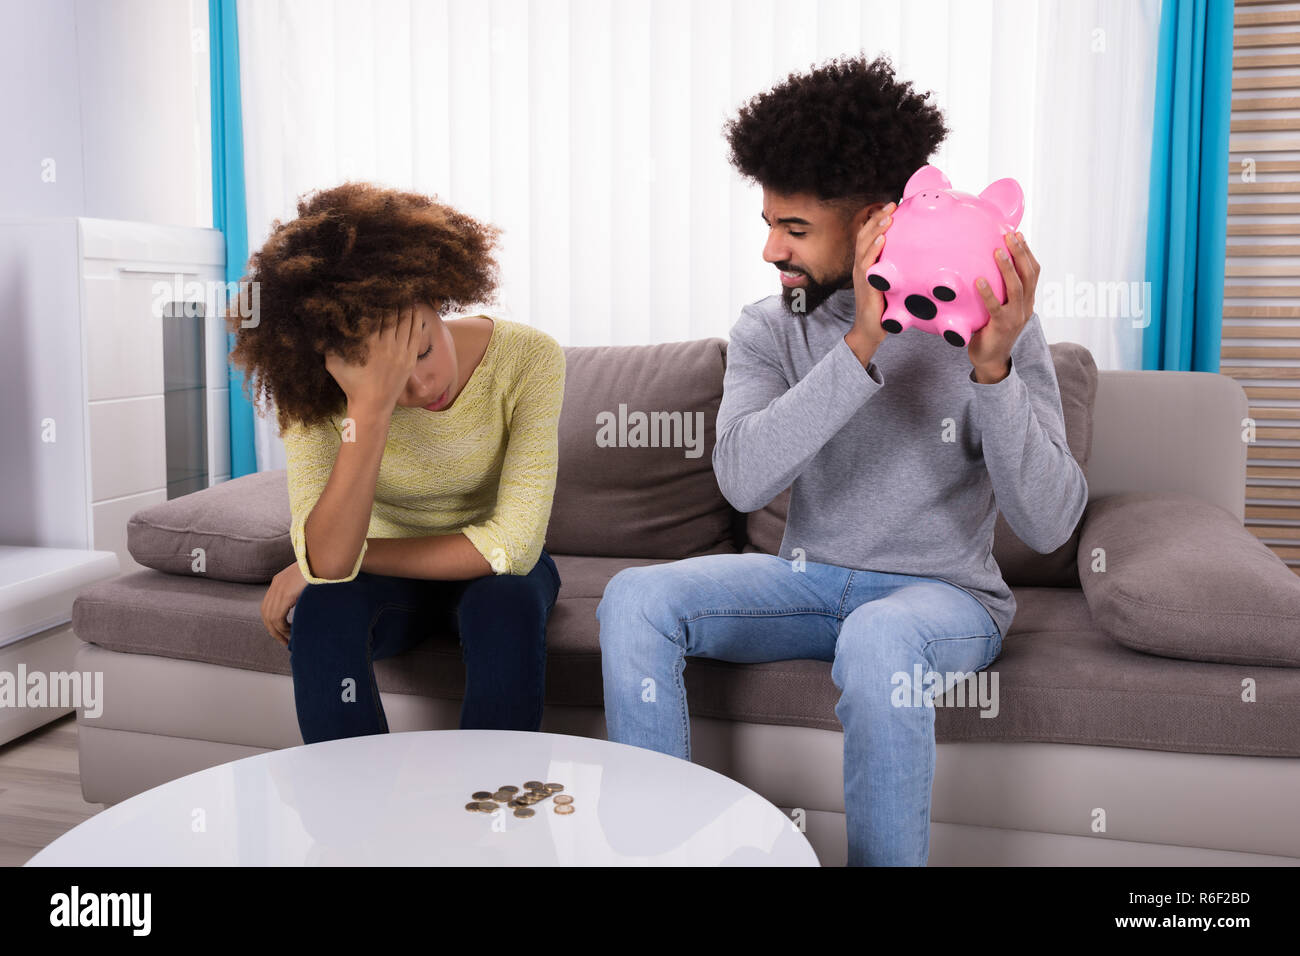 Woman Looking At Piggybank Raised By Man - Stock Image